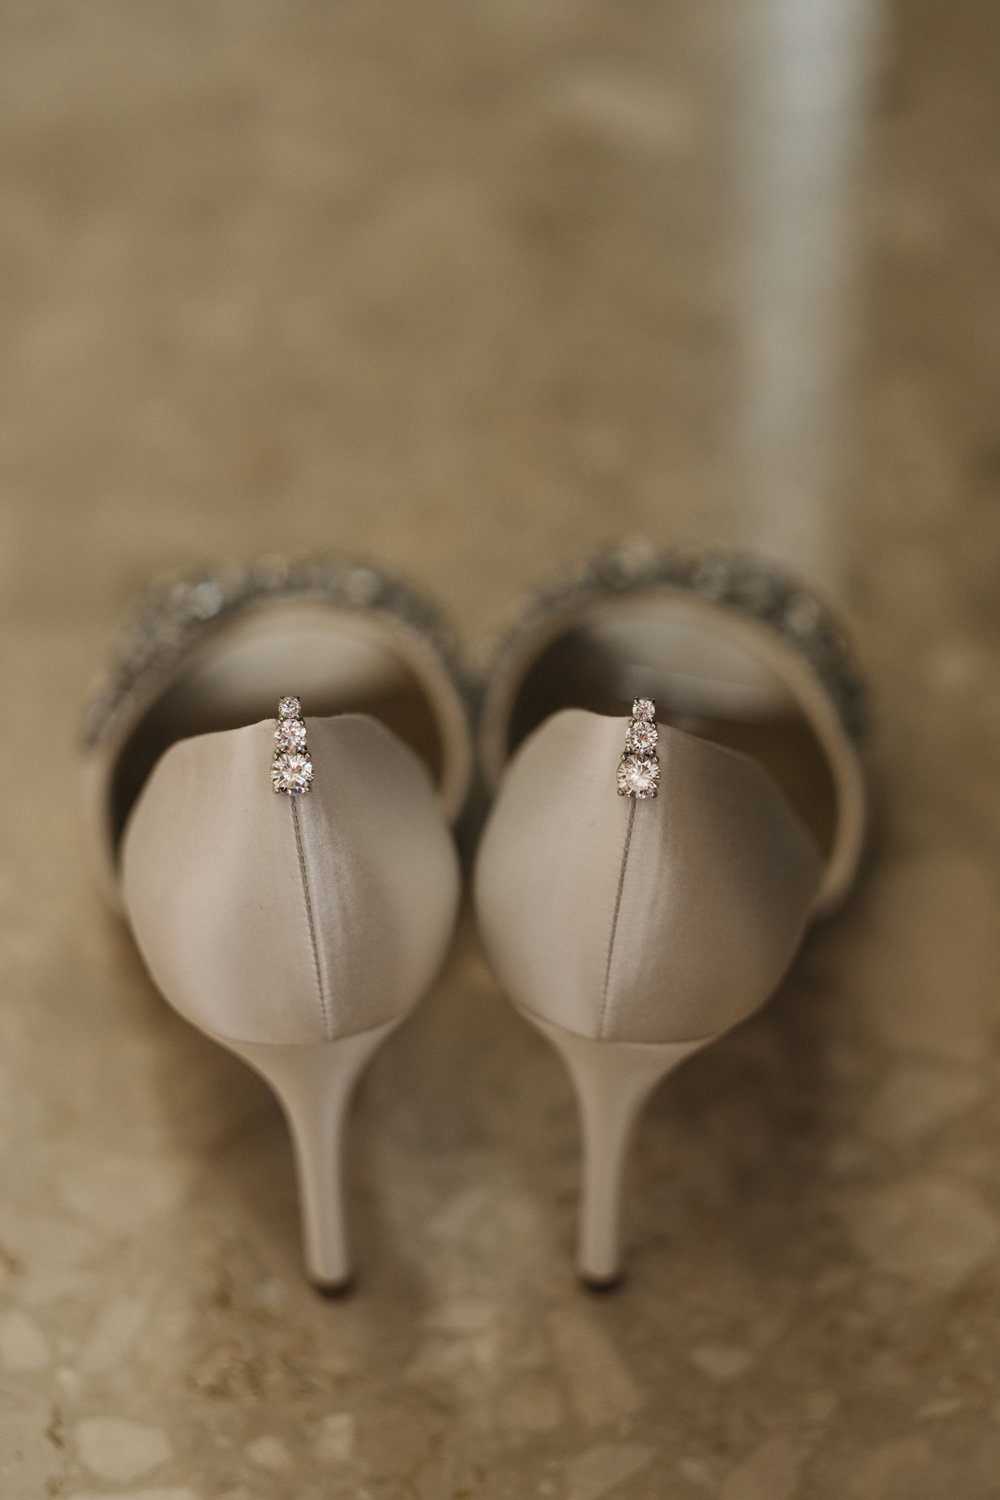 Detail photography of wedding shoes and diamond earrings.